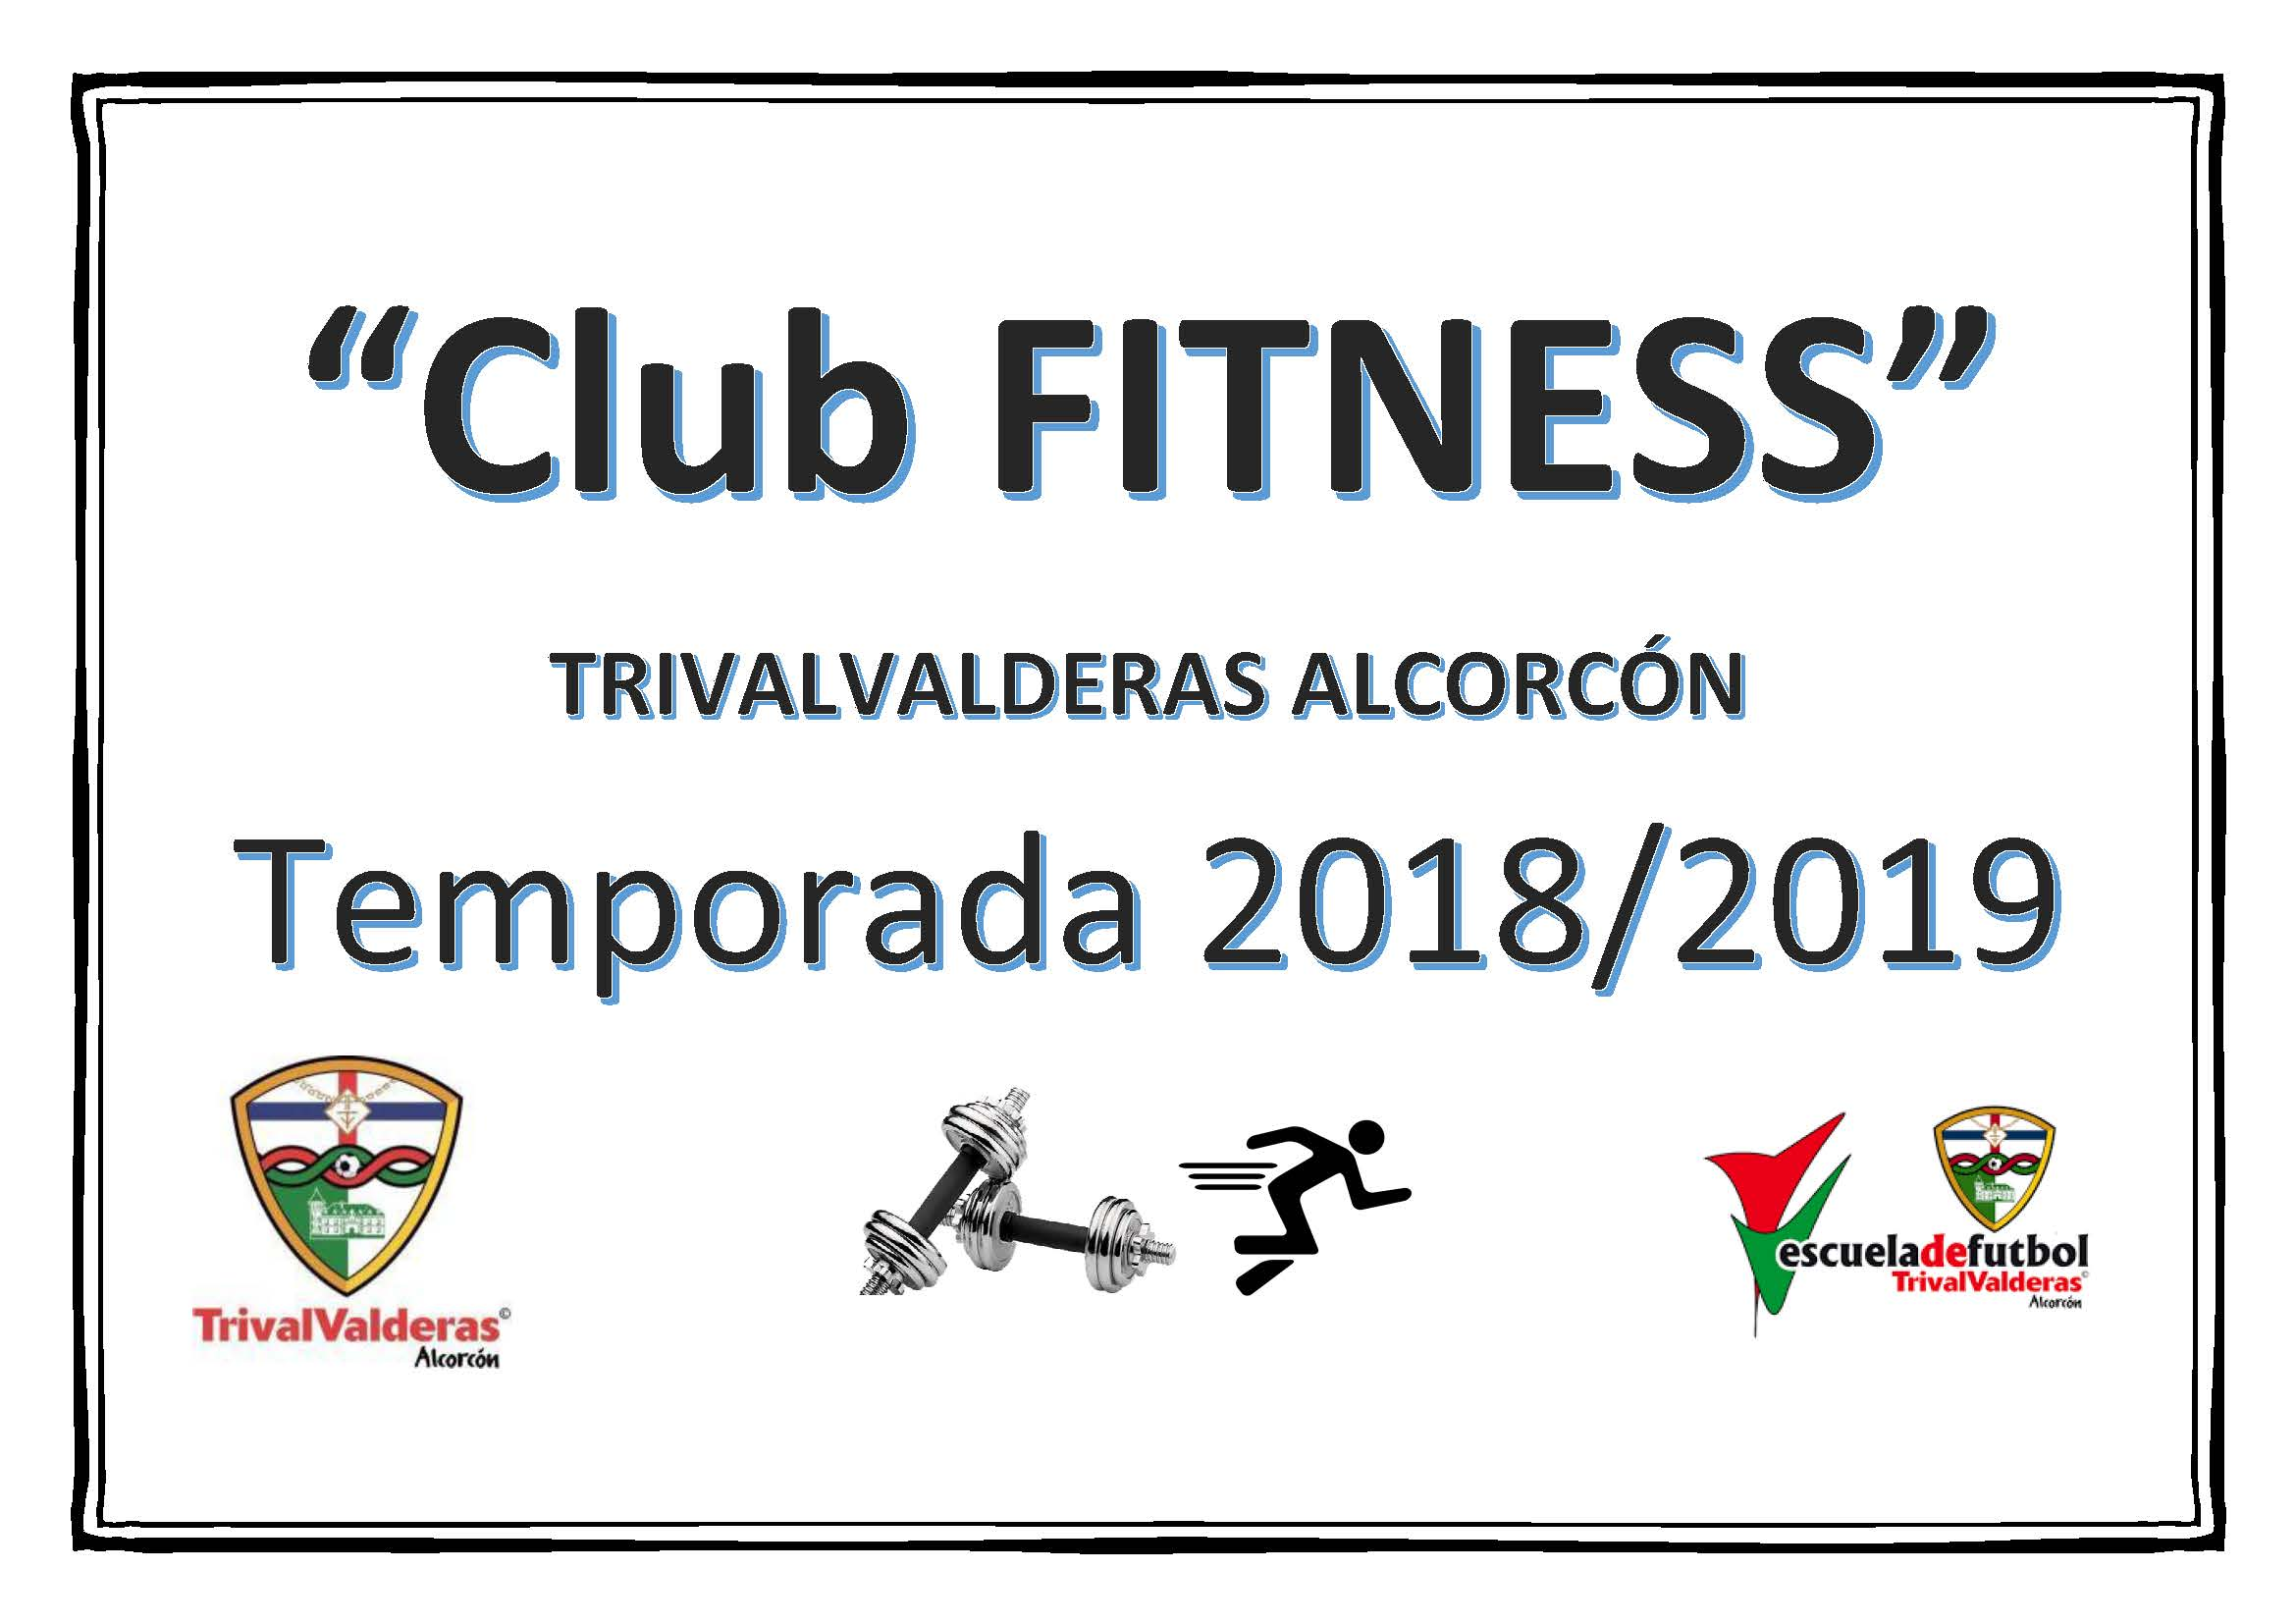 CLUB FITNESS TEMPORADA 2018/2019